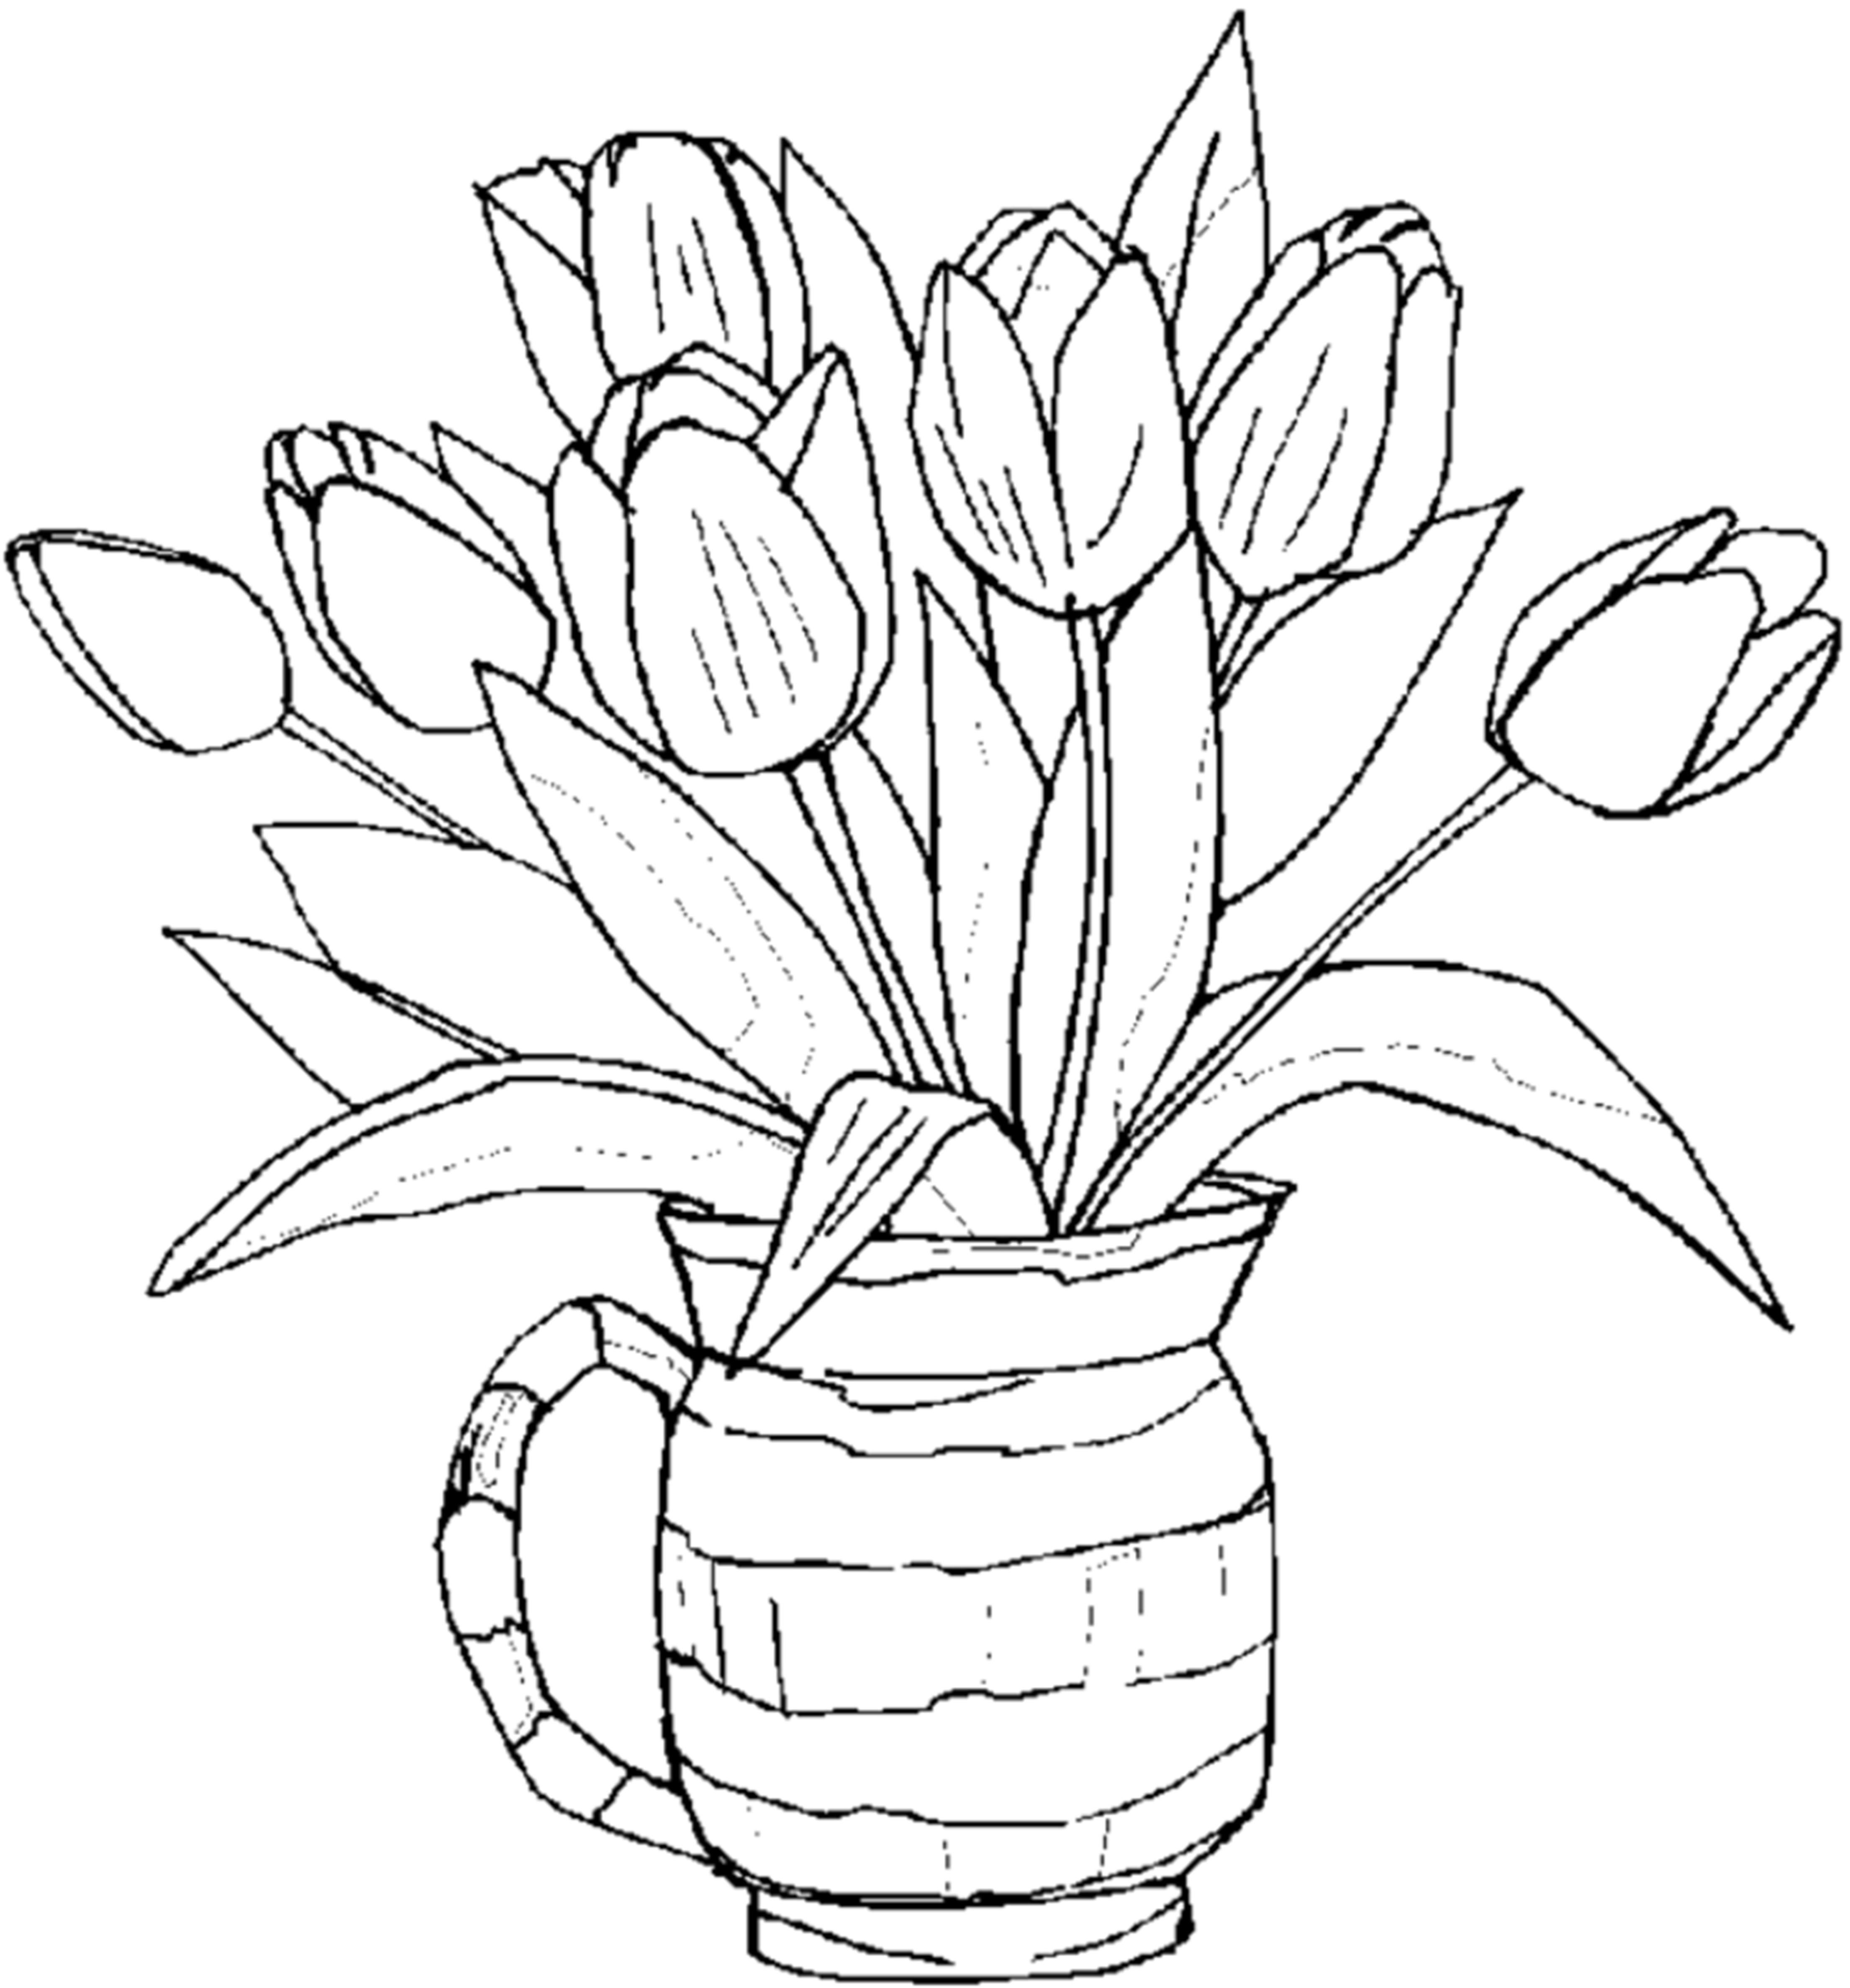 colouring pictures of flowers free printable flower coloring pages for kids best colouring flowers pictures of